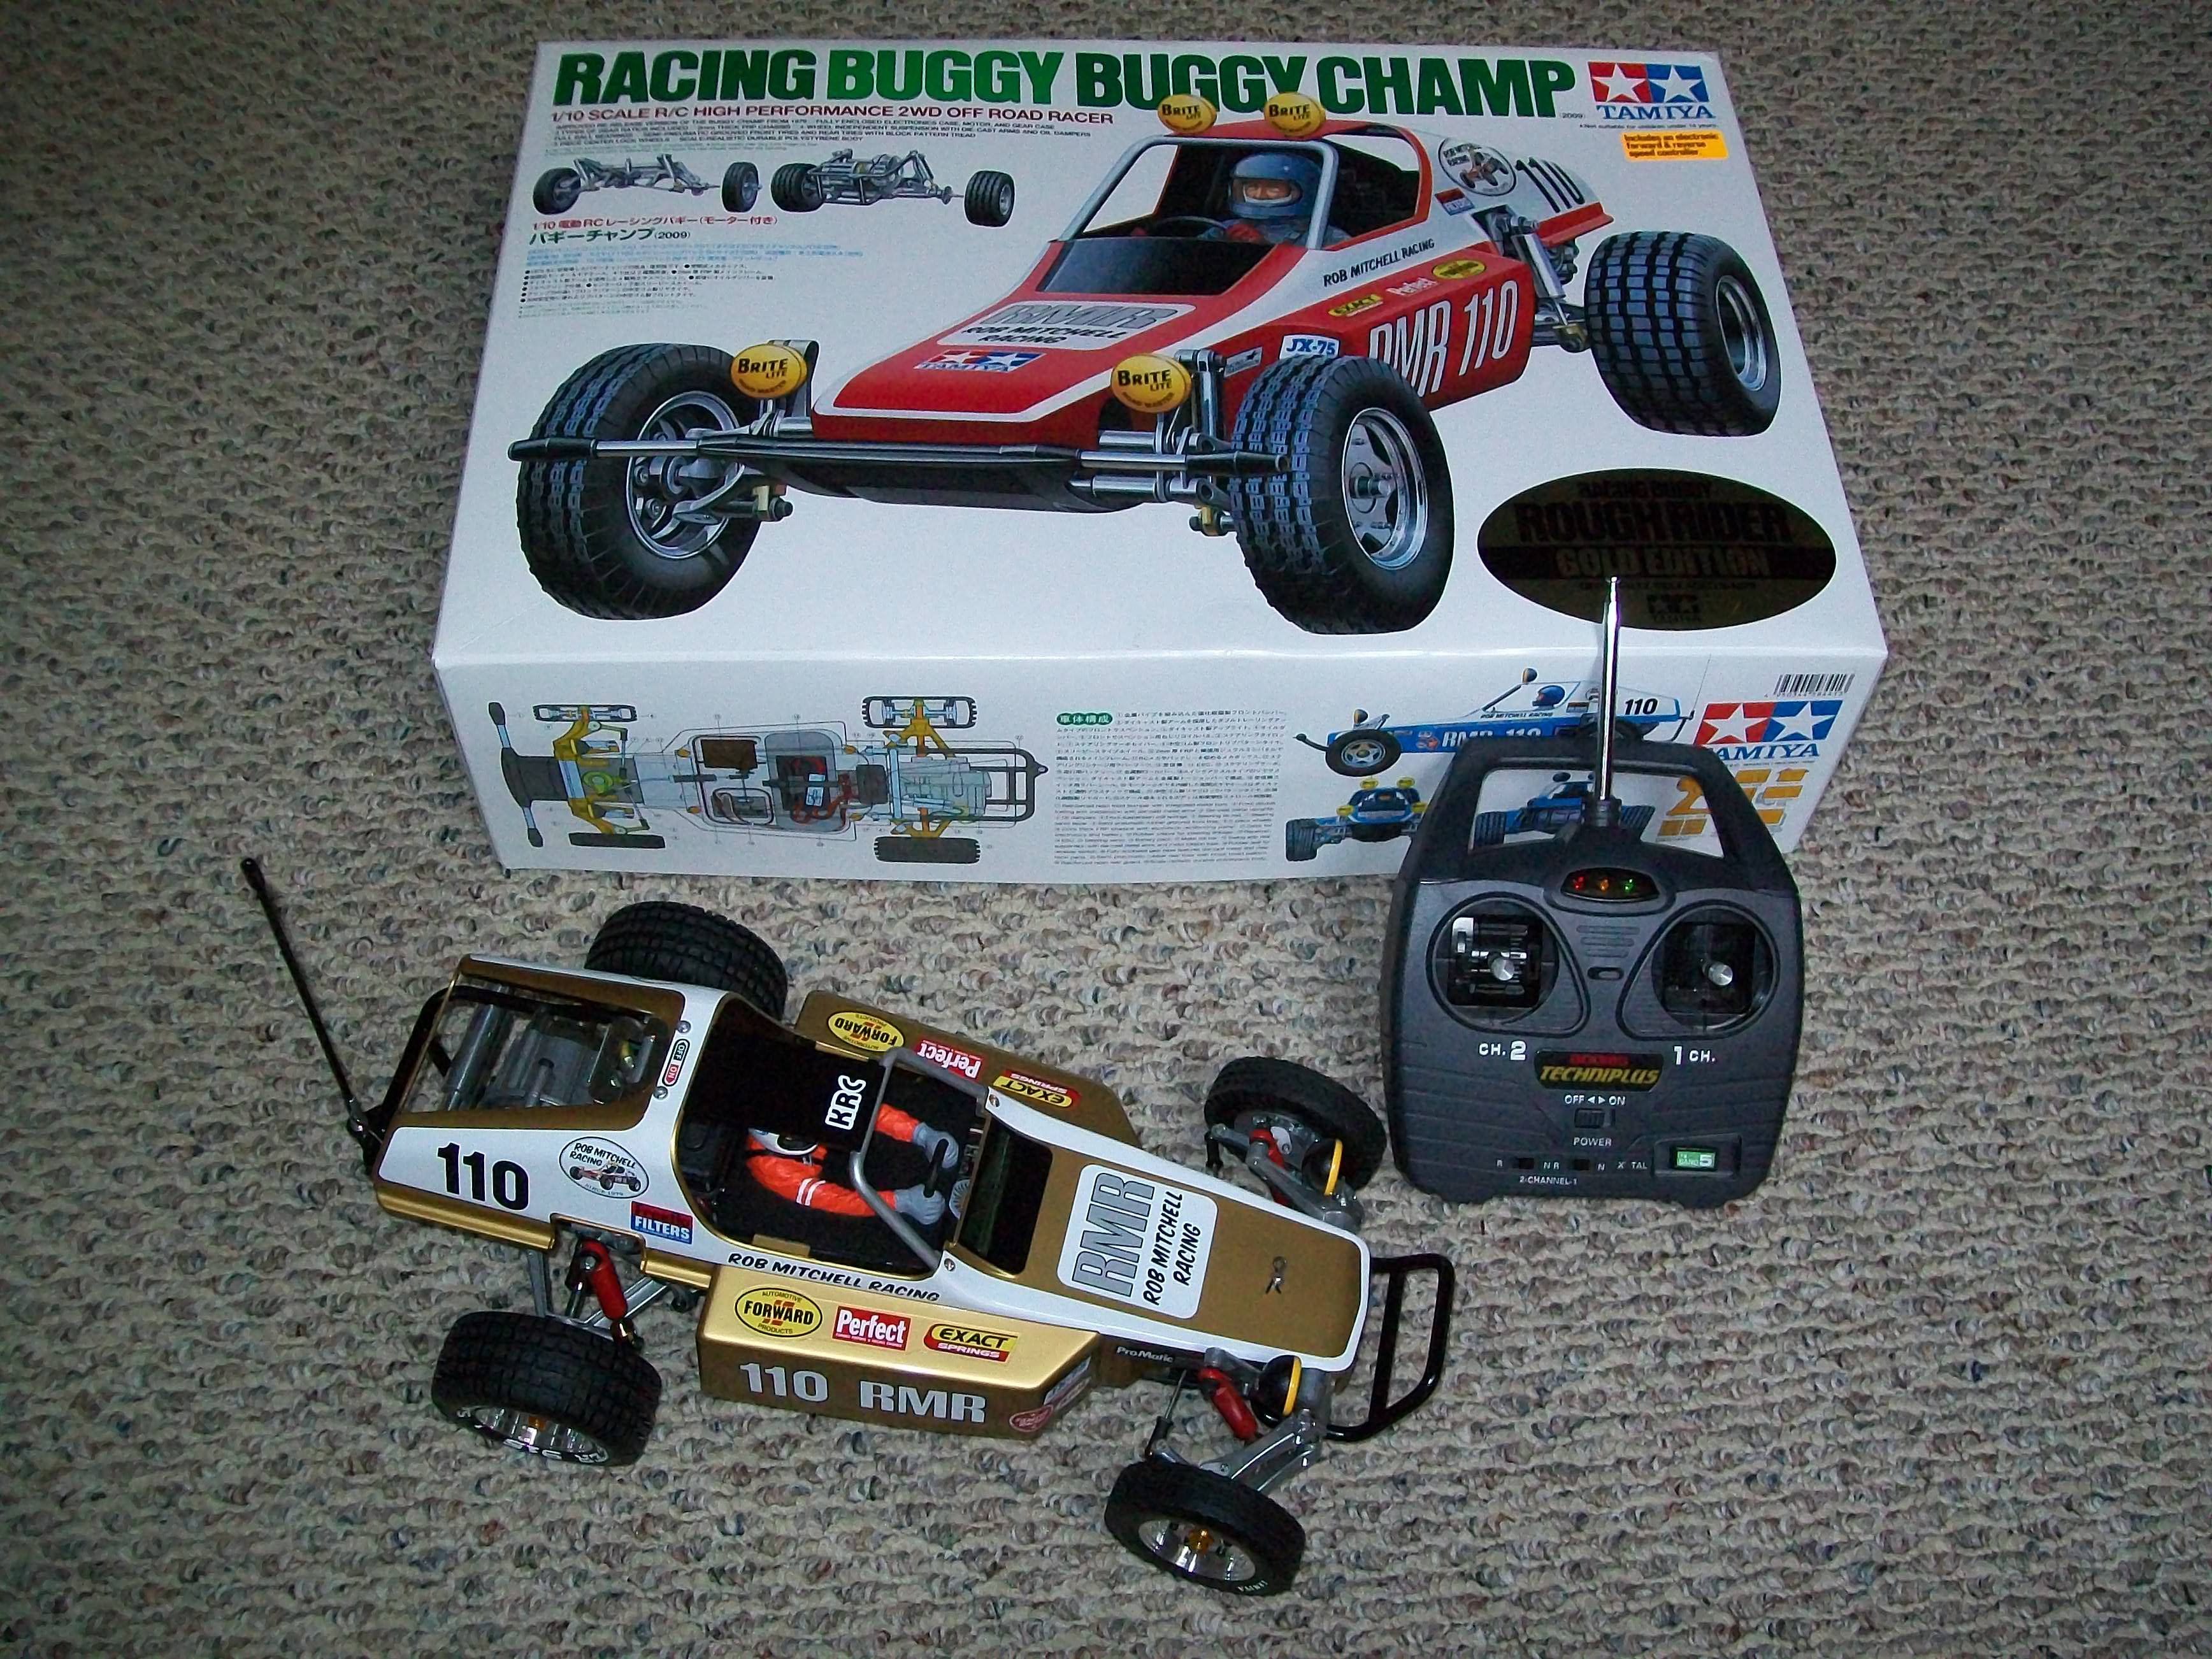 Official Tamiya Sand Scorcher Re Release Thread Rcu Forums Class Size Rc Electric 6 Channel 3d Rtf Helicopter The Exceedrc G2 Yeah I Luv Buggy Champ Toheres Mine